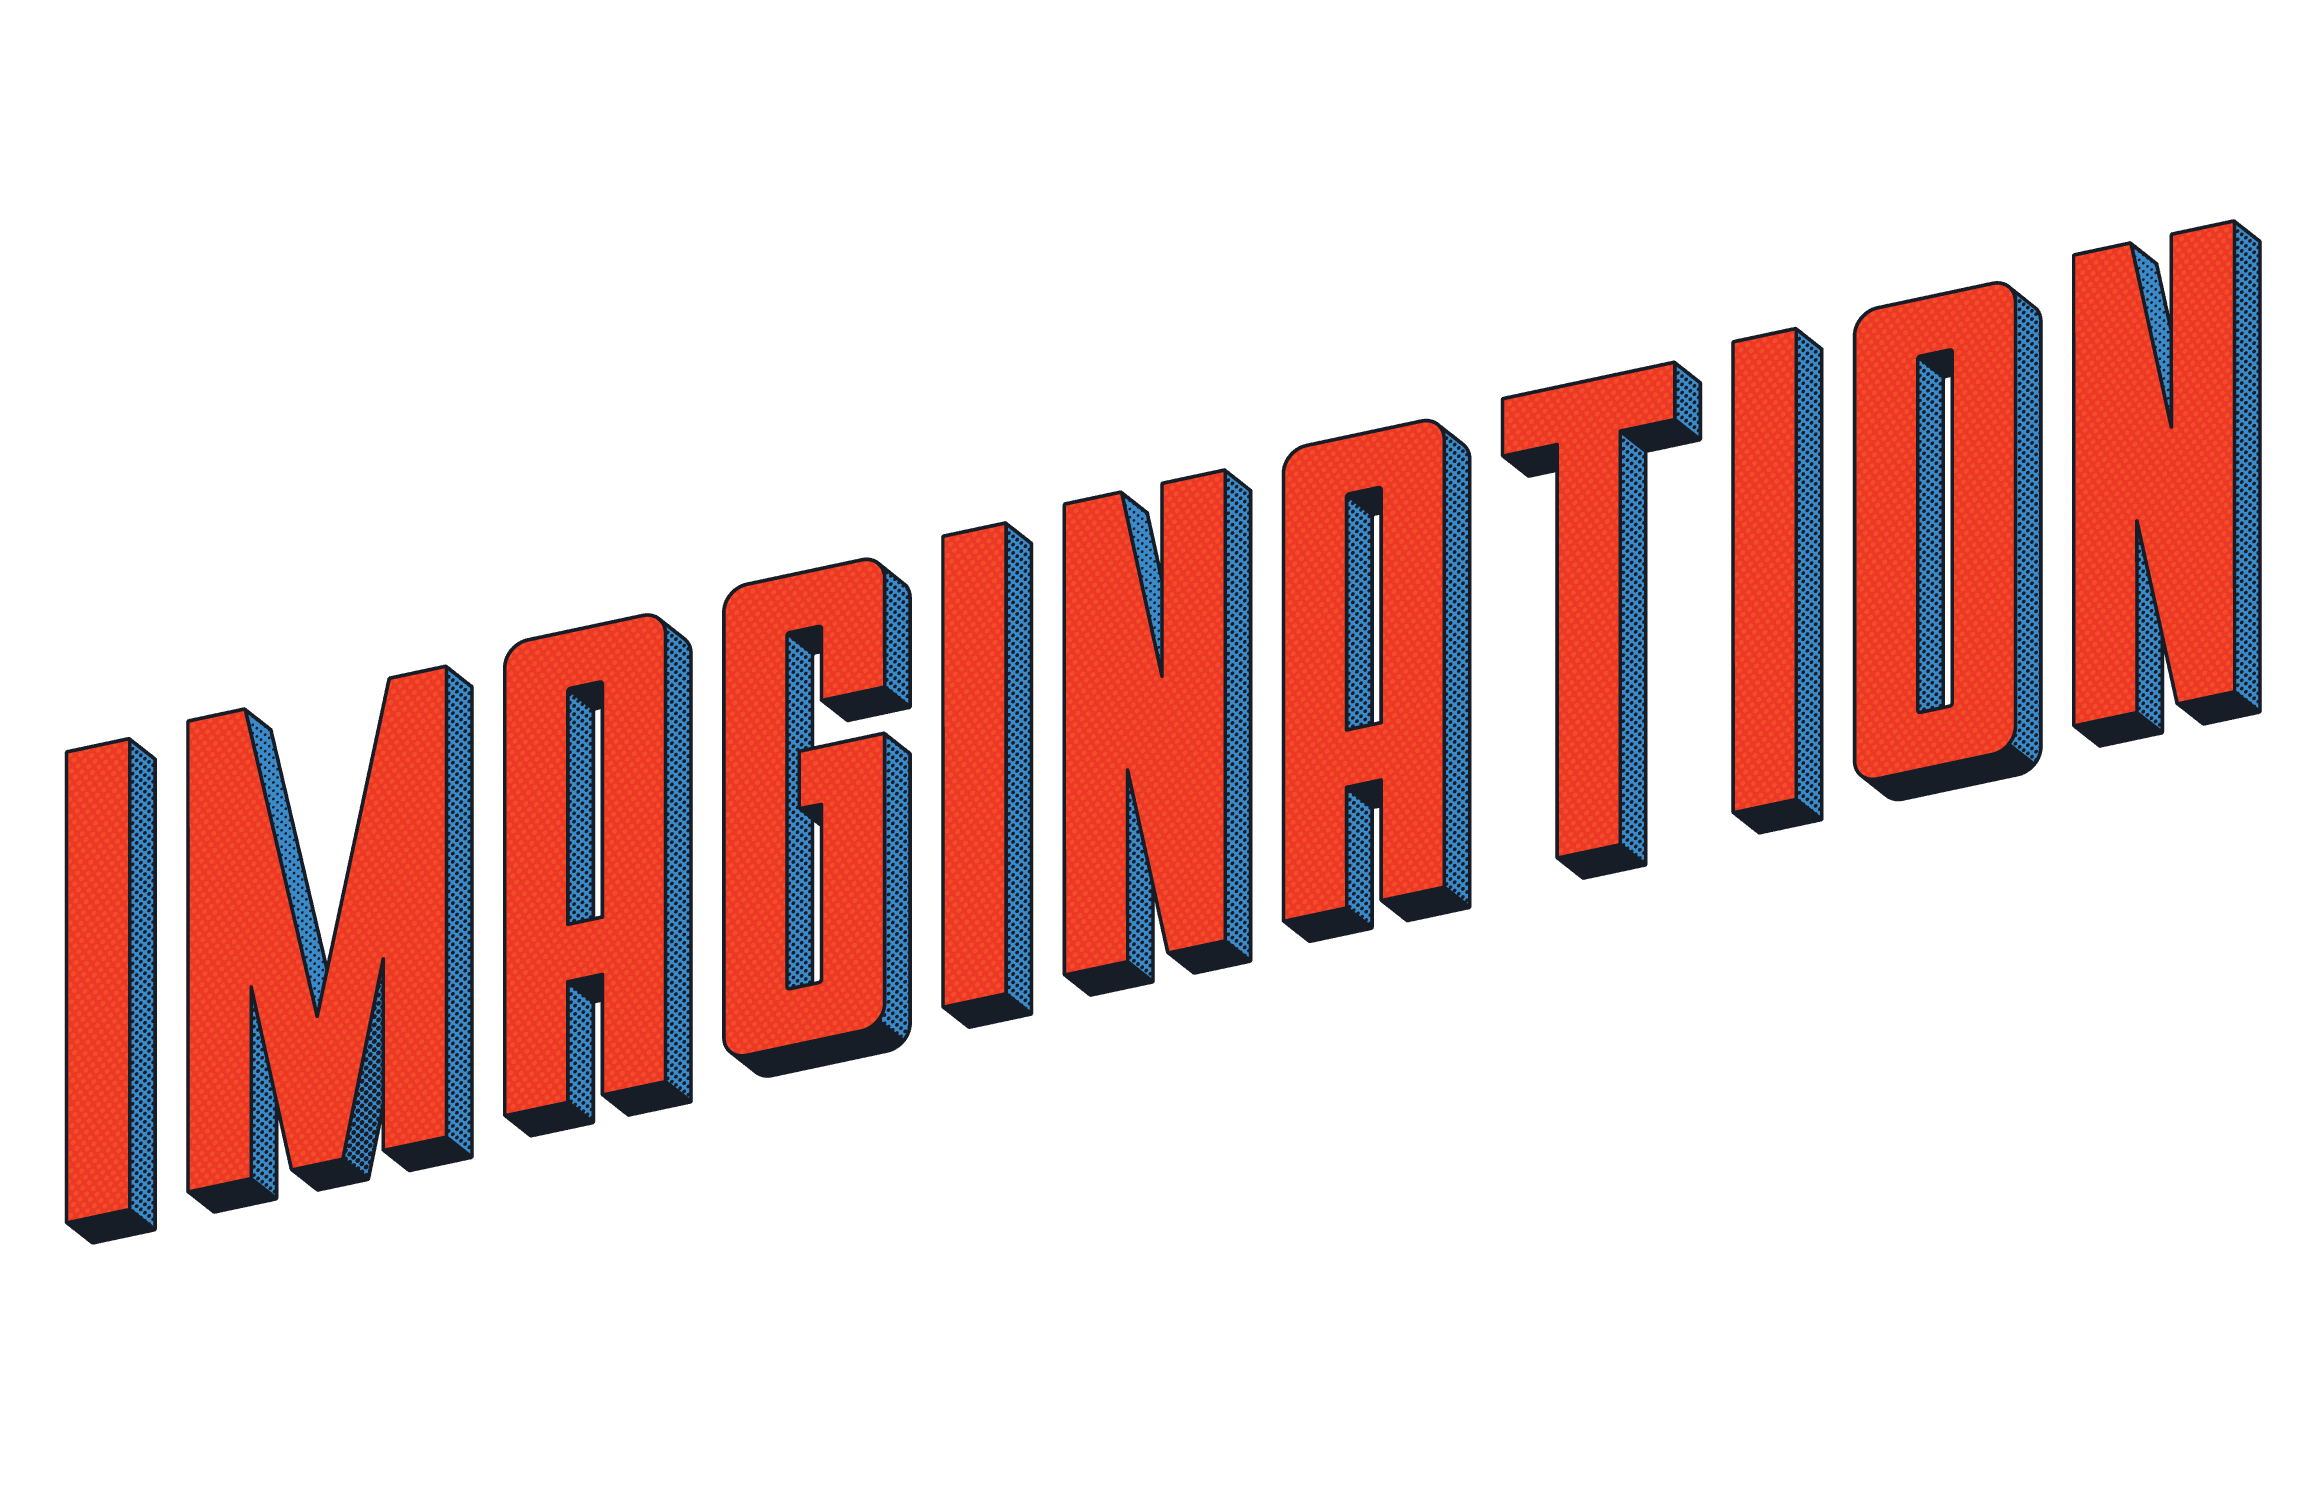 Imagination in bold red comic book text